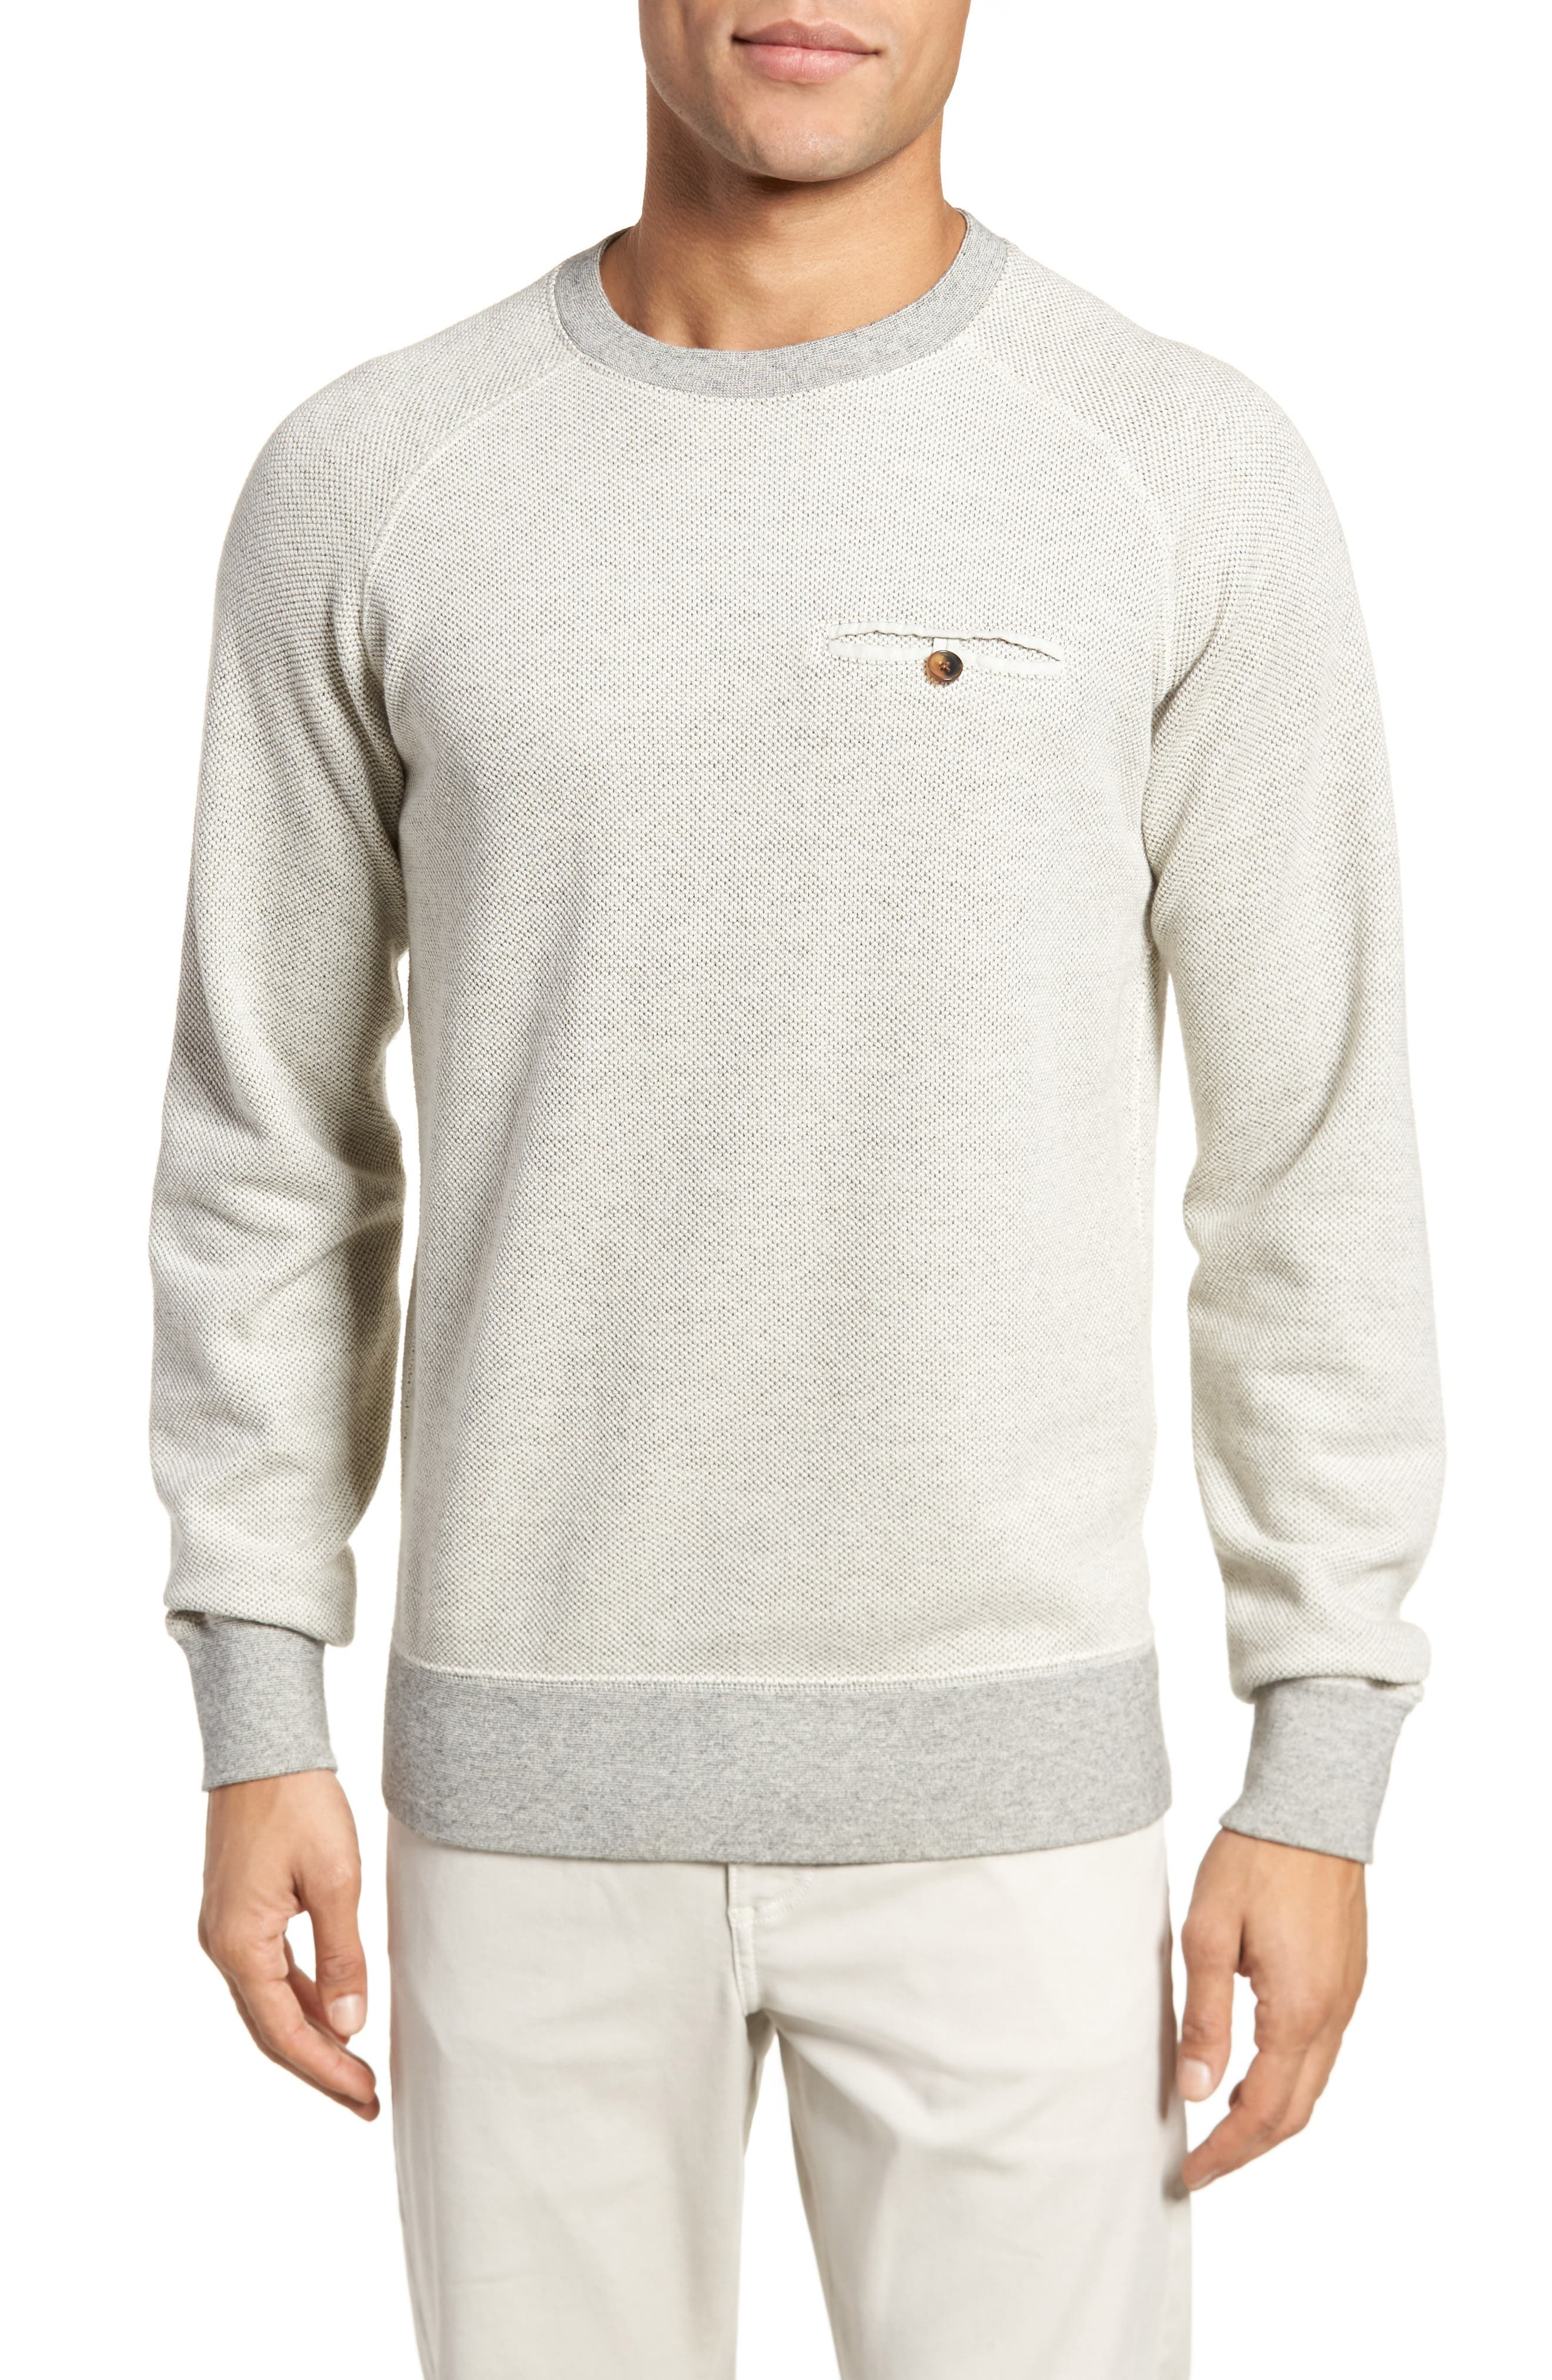 Tommy Pullover Sweatshirt,                         Main,                         color, Light Grey